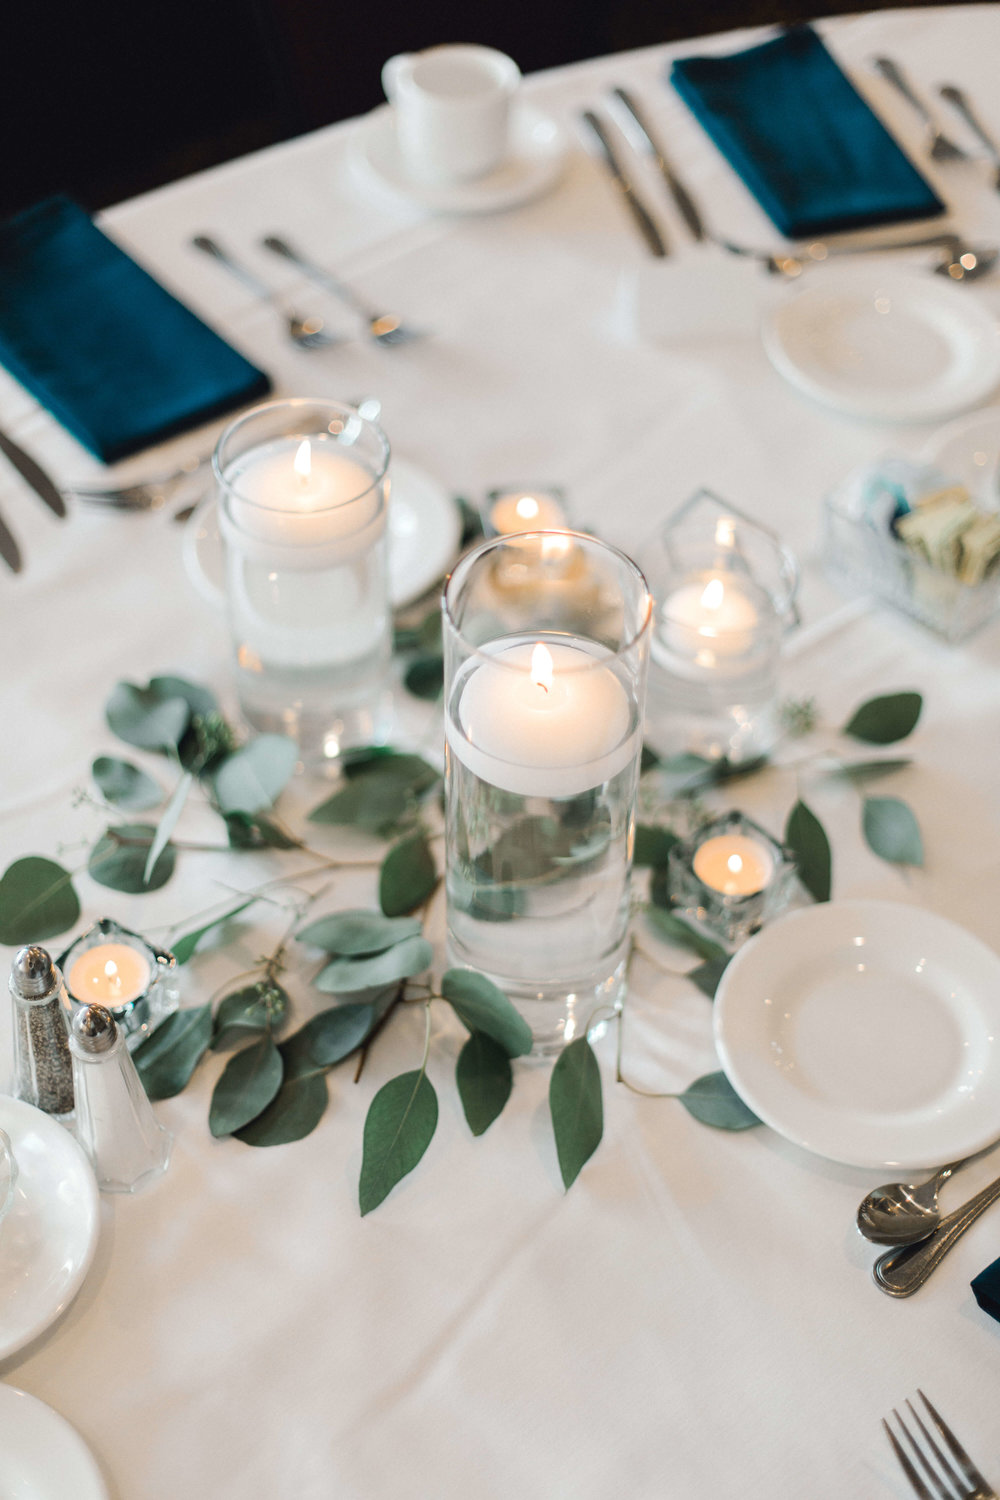 teal napkins, cylinder vases with floating candle and greenery | Lauren Baker Photography | Sixpence Events Blog Post: Must Have Wedding Photography Tips